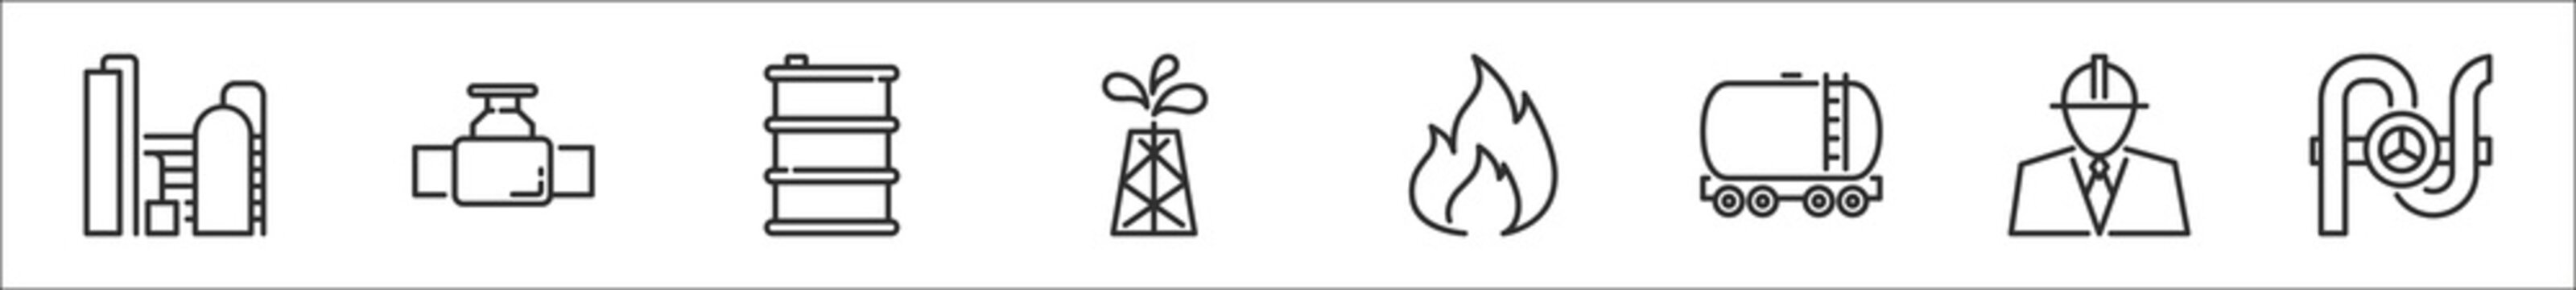 set of 8 oil and petroleum industry thin outline icons such as oil industry, faucet, oil barrel, pumps, fire, tank, engineer, faucet